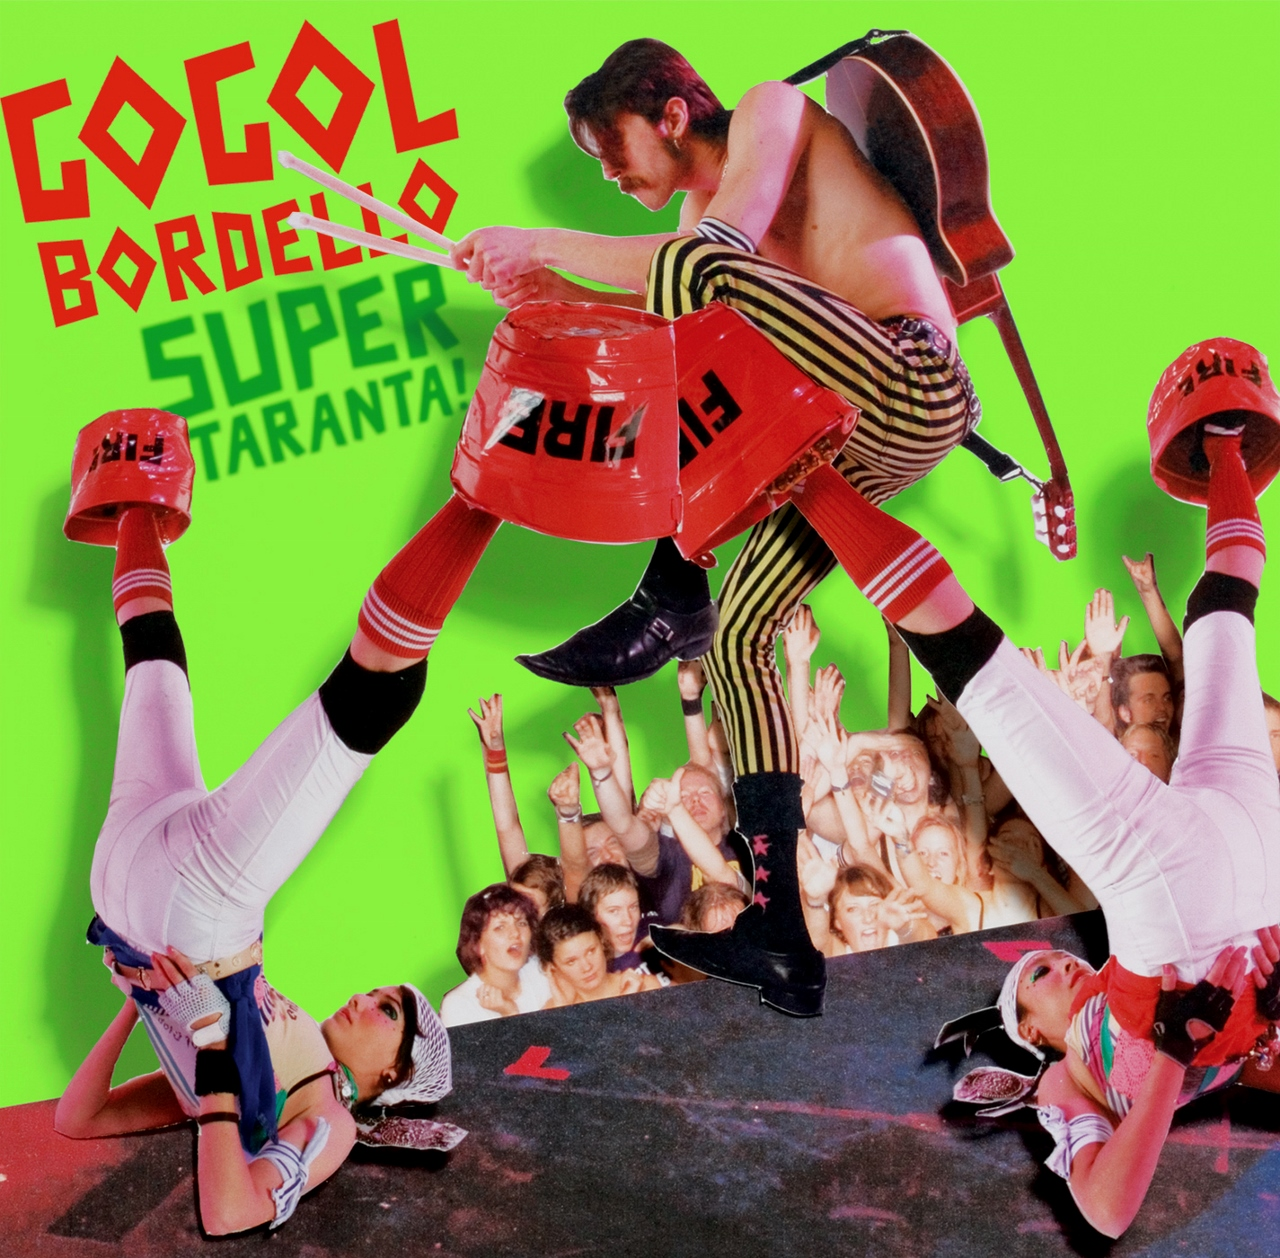 gogol bordello super taranta cover 1280x1258